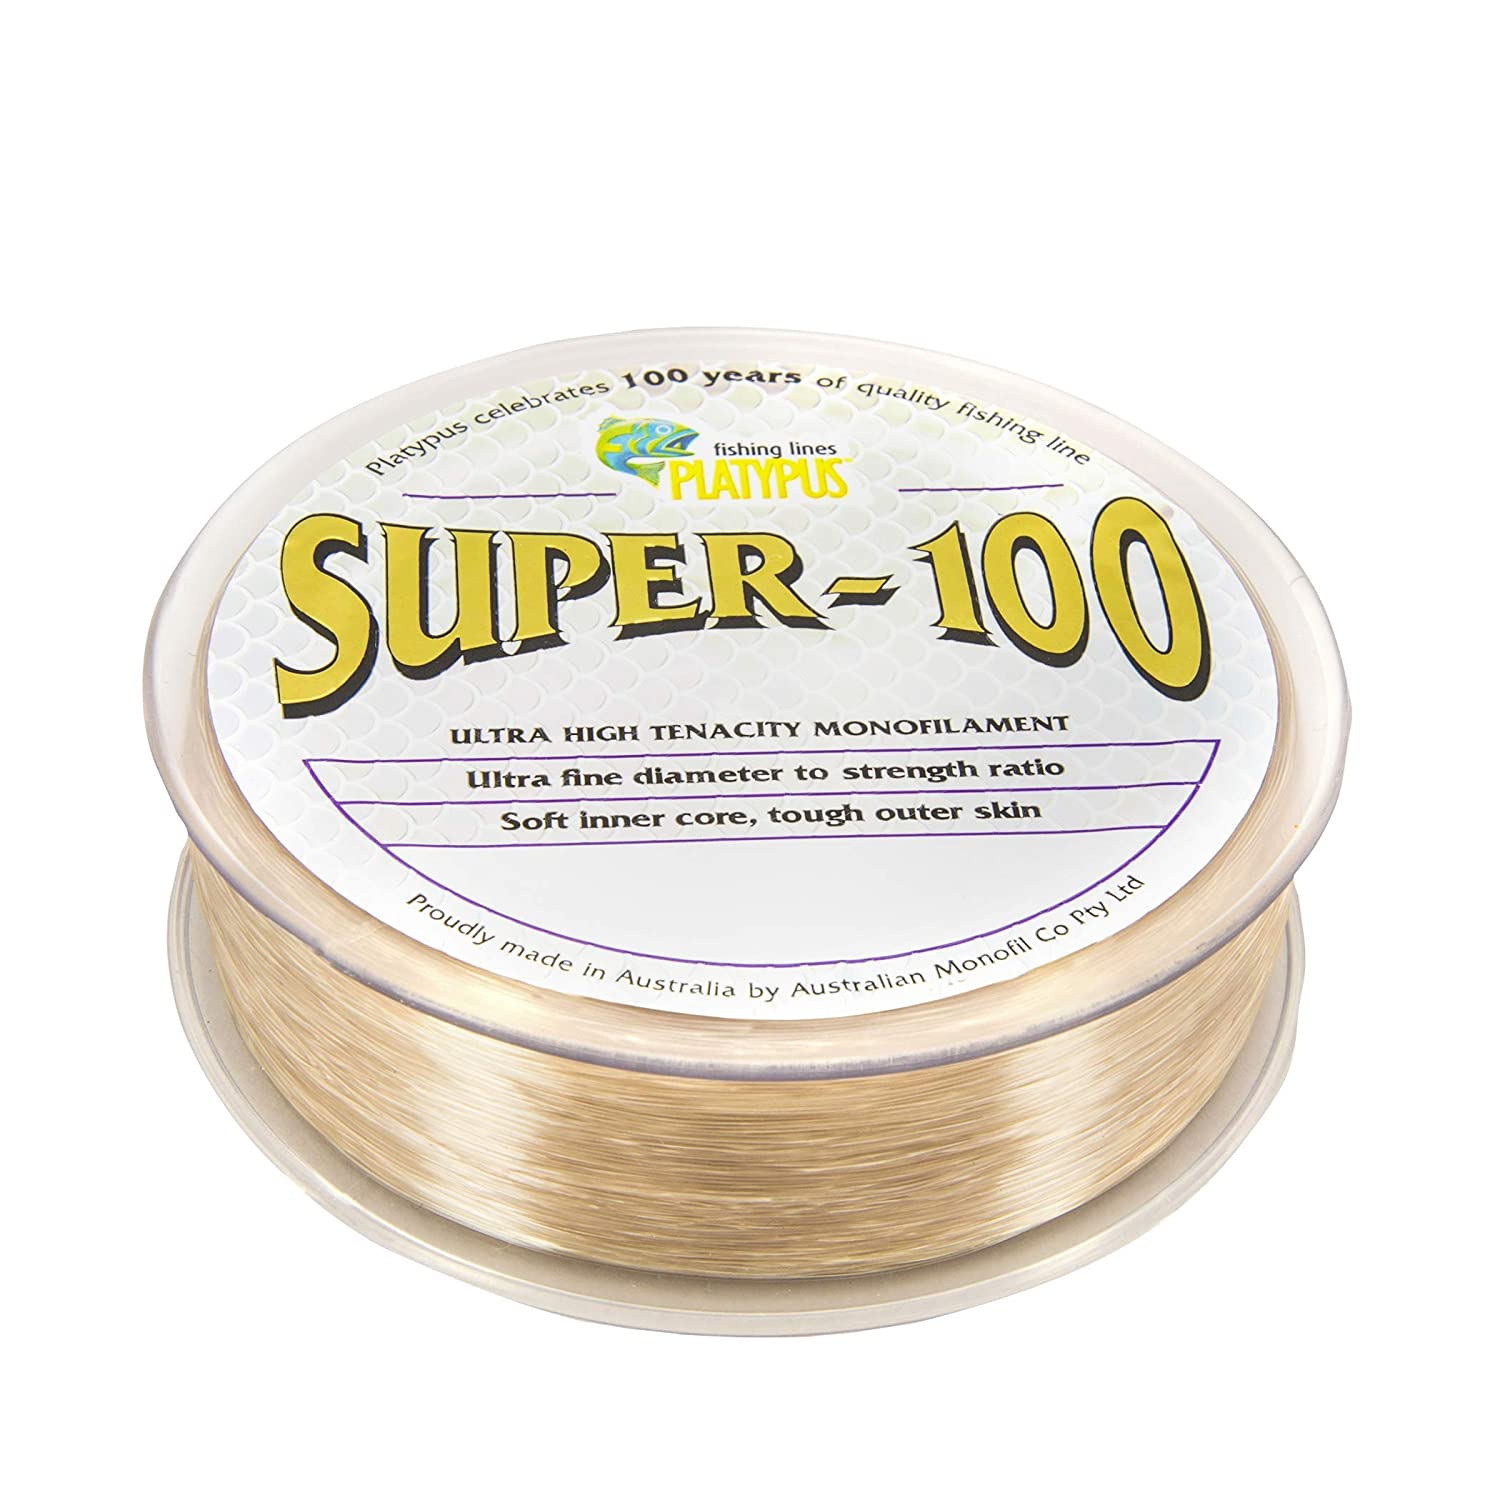 Platypus Super-100 – World s Strongest Fishing Line Since 1898 Natural Brown